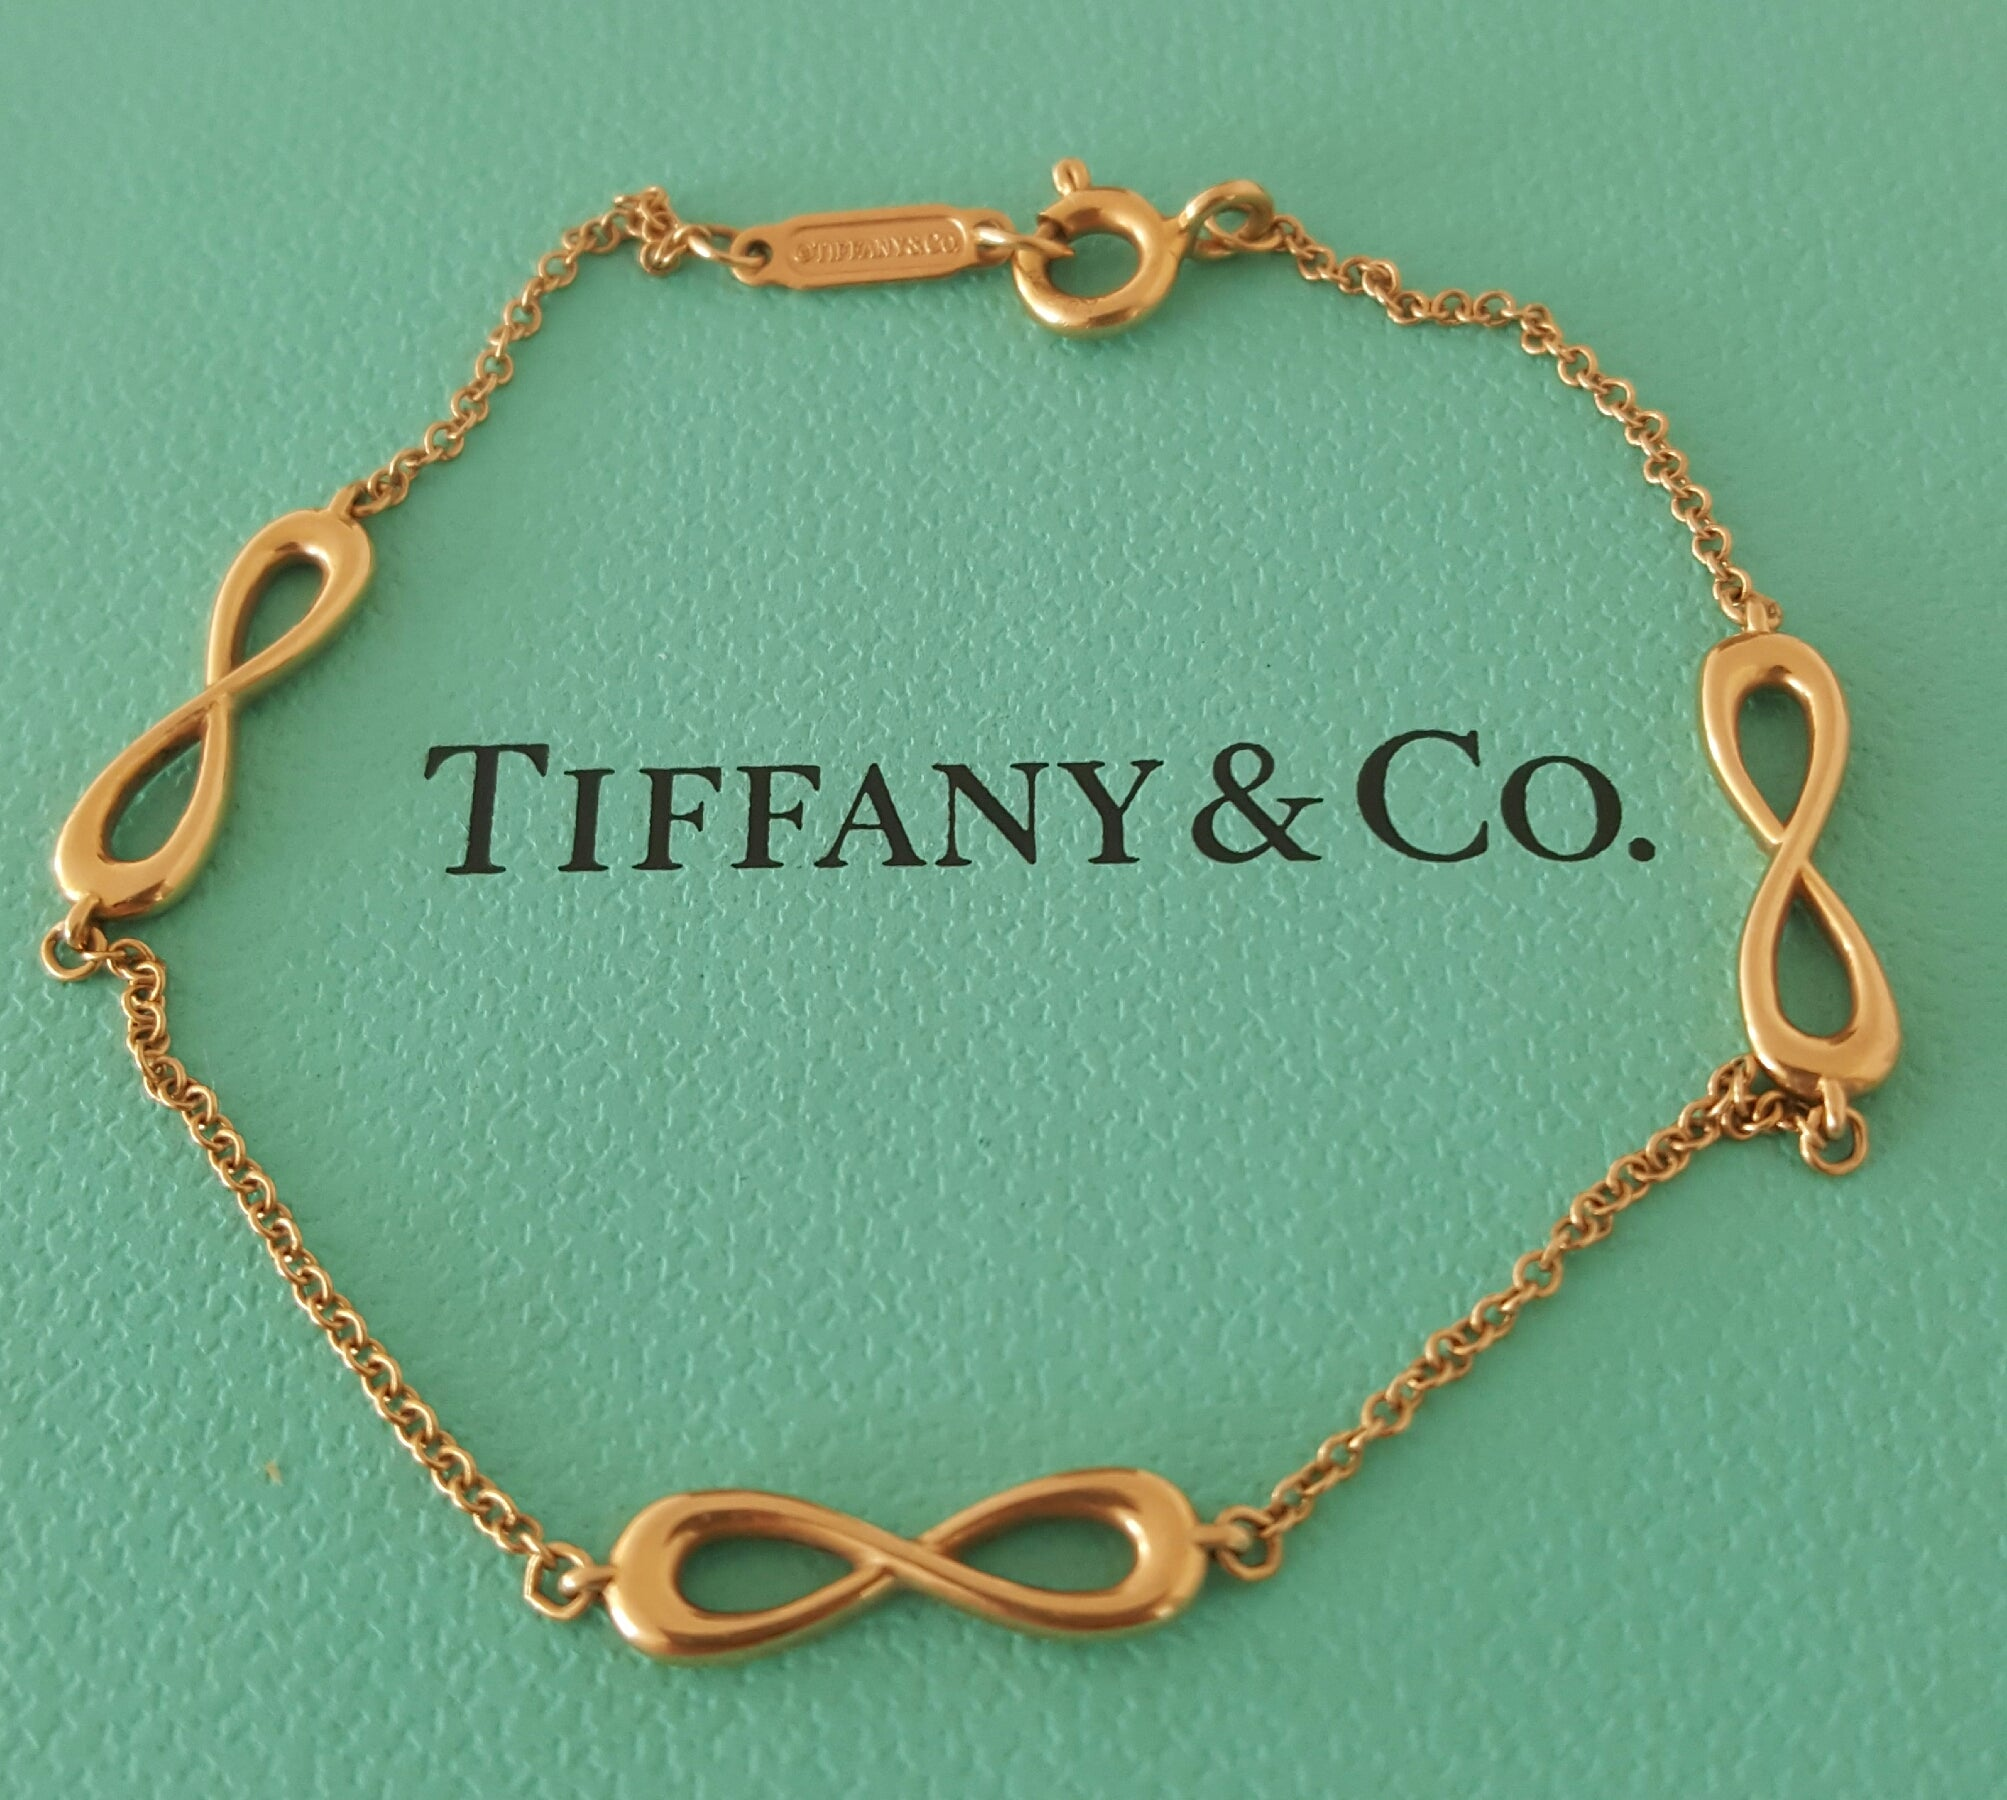 Tiffany & Co. 18ct Rose Gold 3 Motif Infinity Bracelet with Packaging